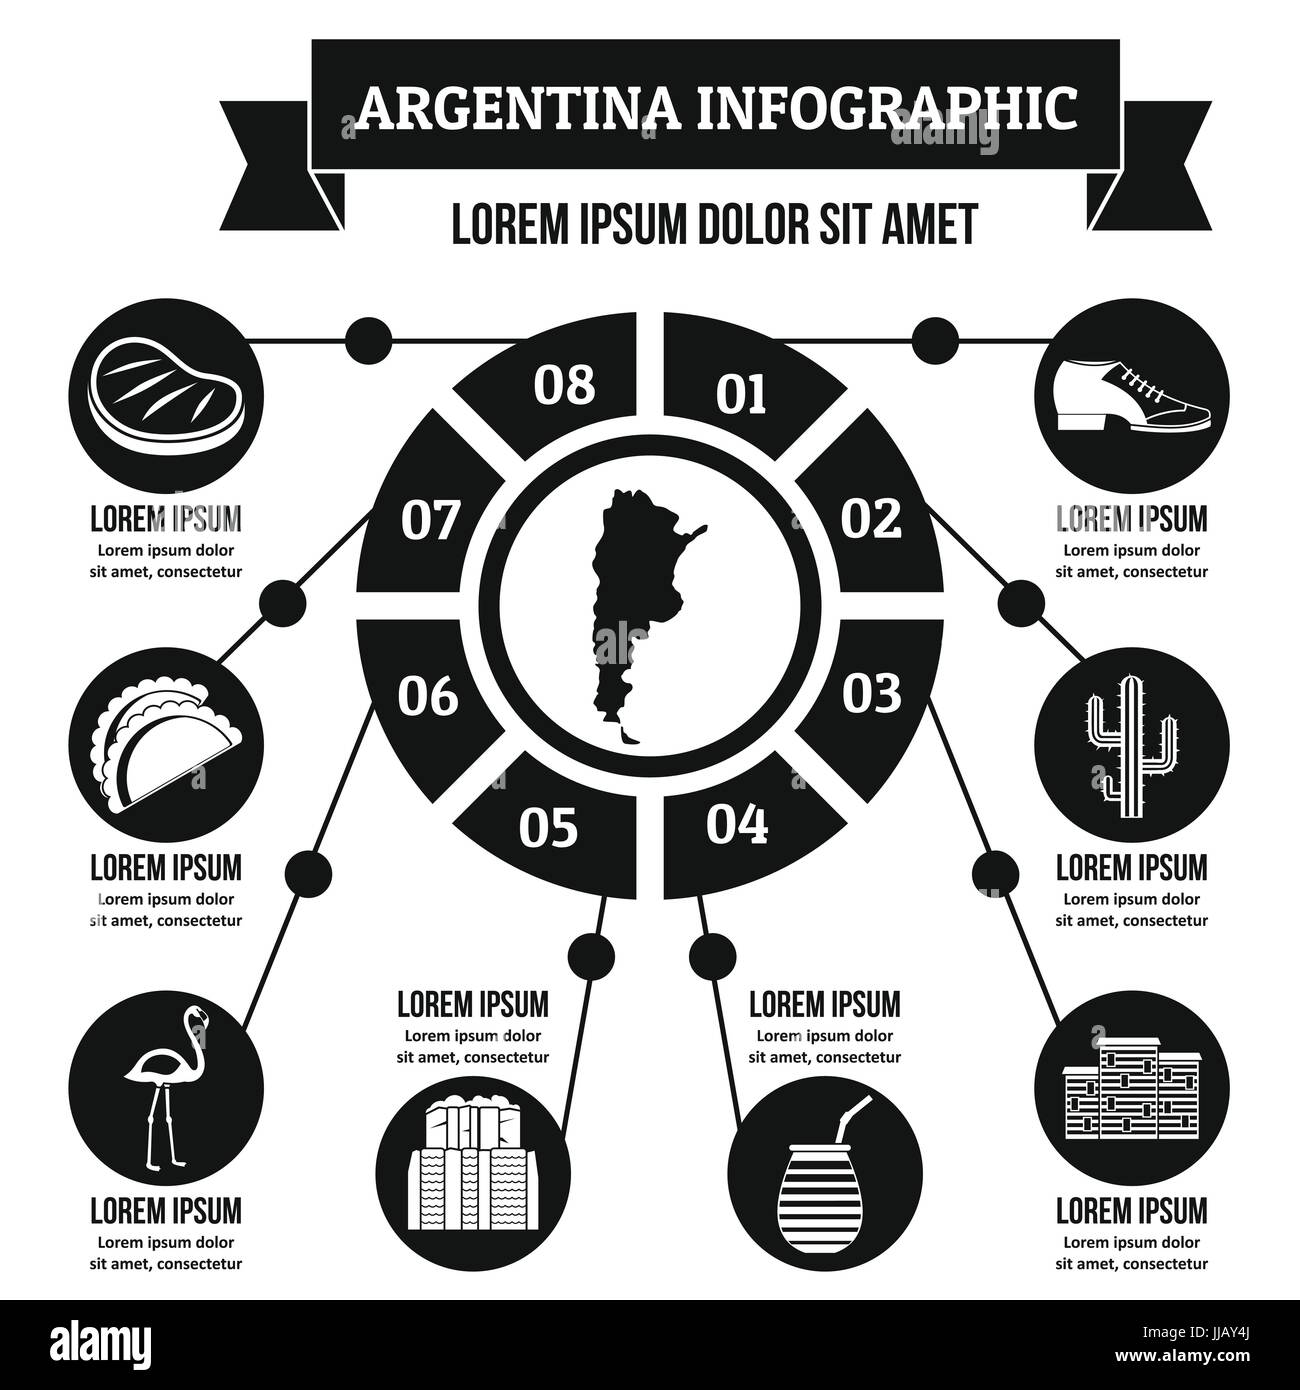 Argentina infographic concept, simple style - Stock Image